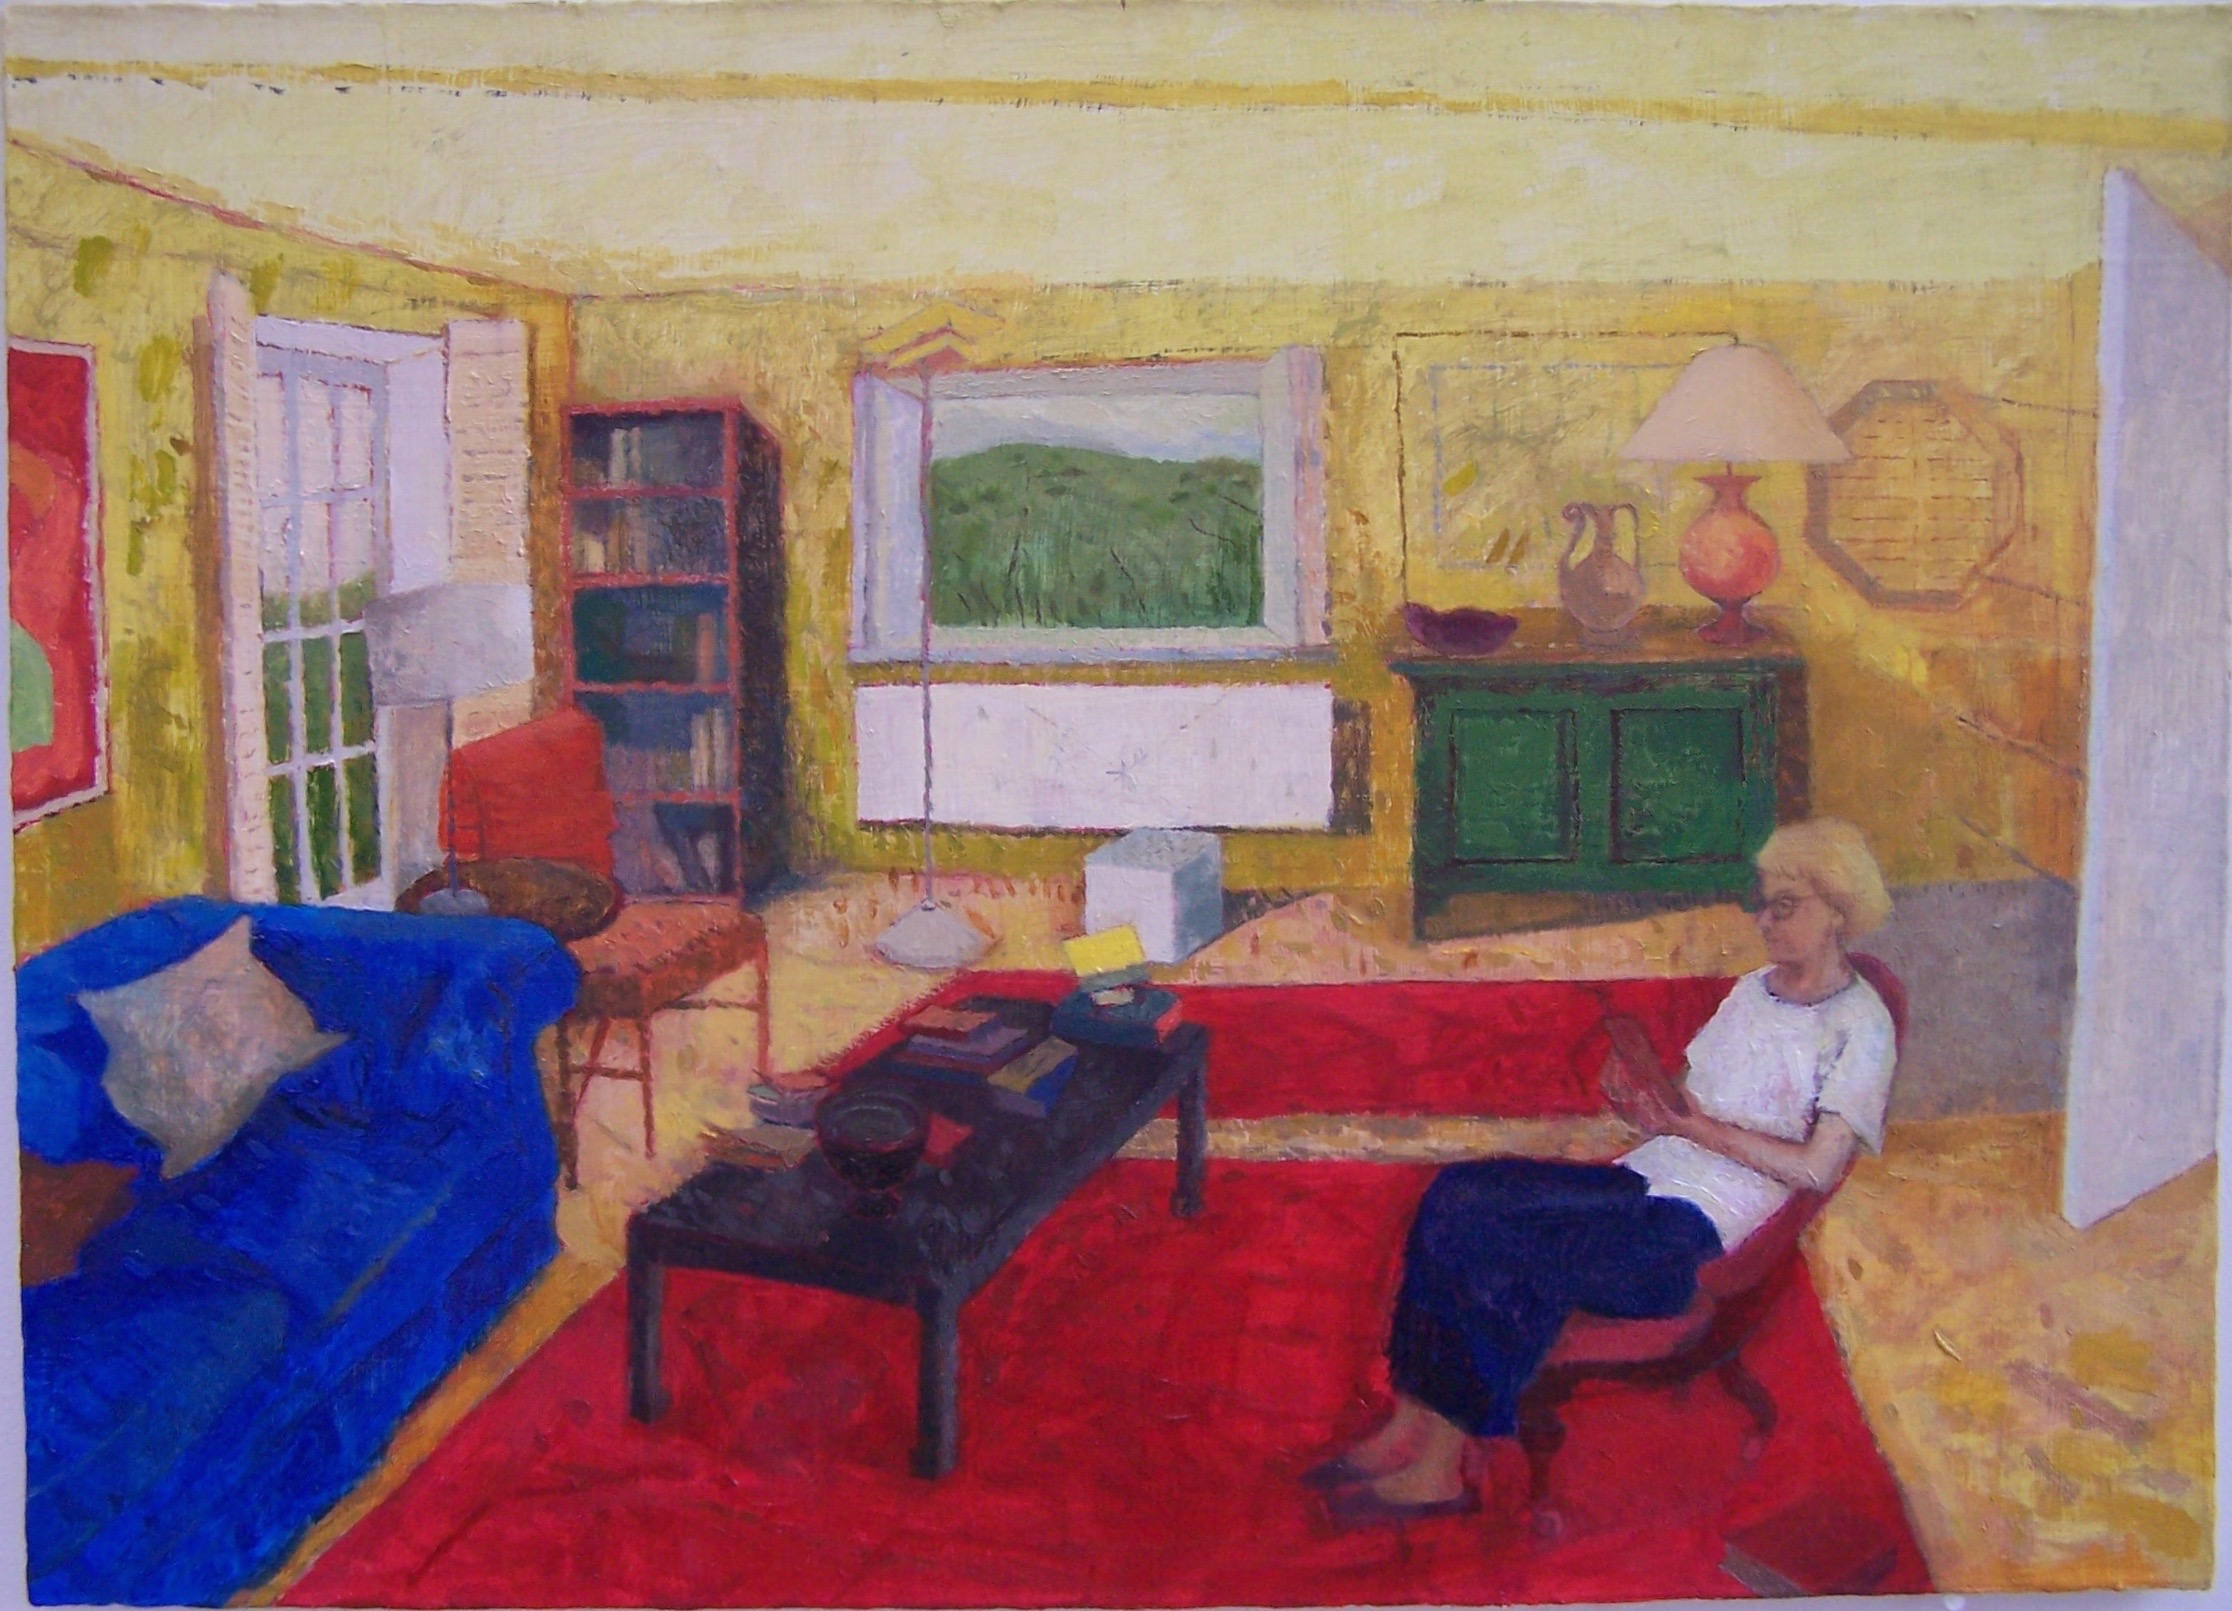 'Room, Wiltshire', 2016, oil on gesso panel